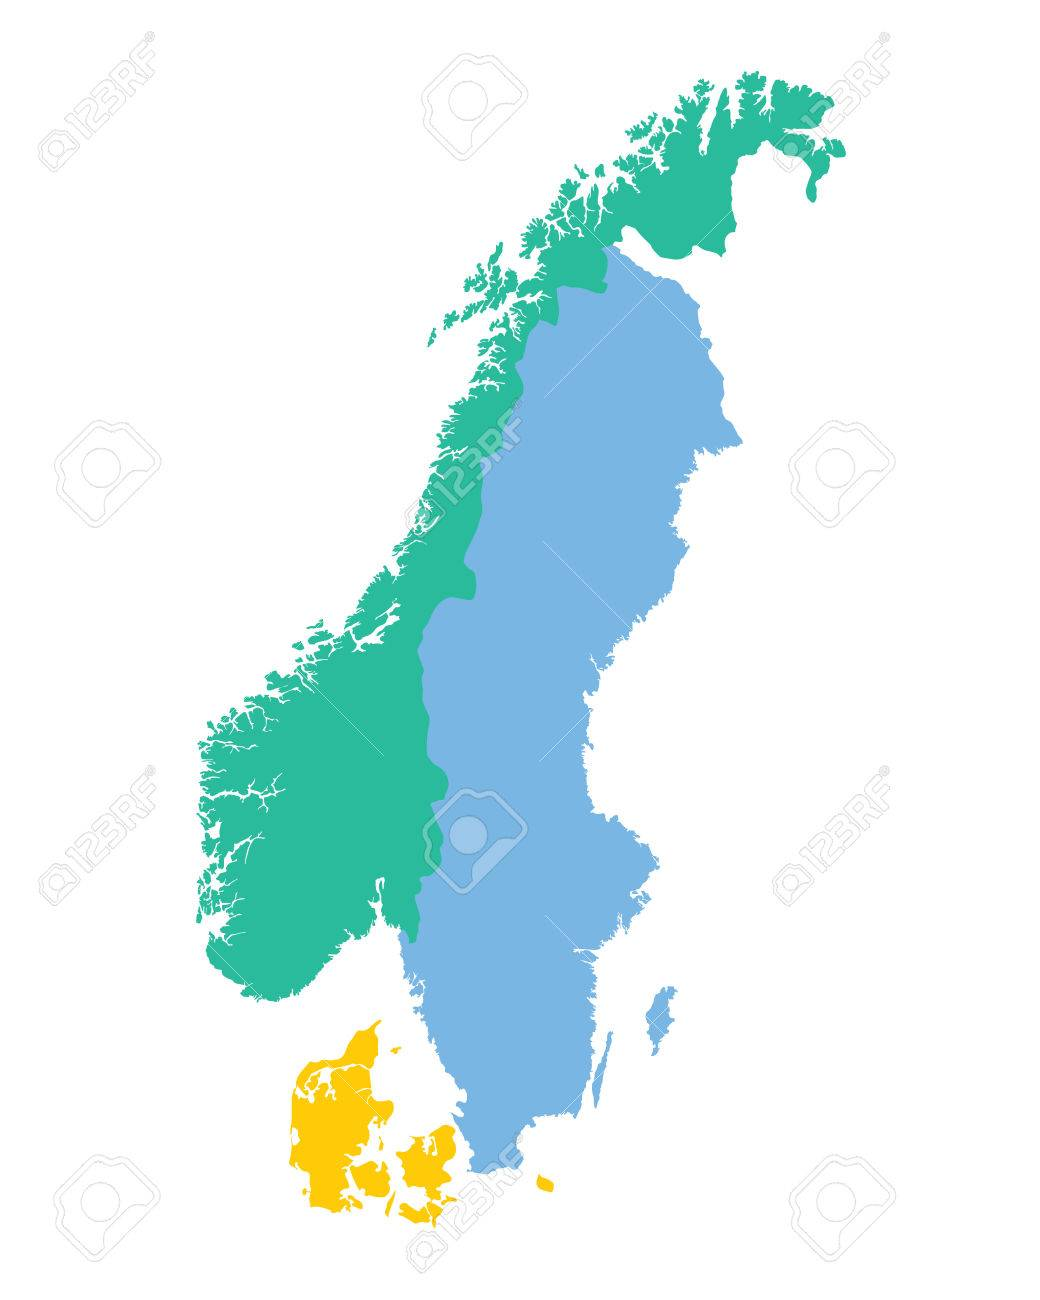 Map Of The Scandinavian Countries Norway Sweden And Denmark - Norway map vector countries